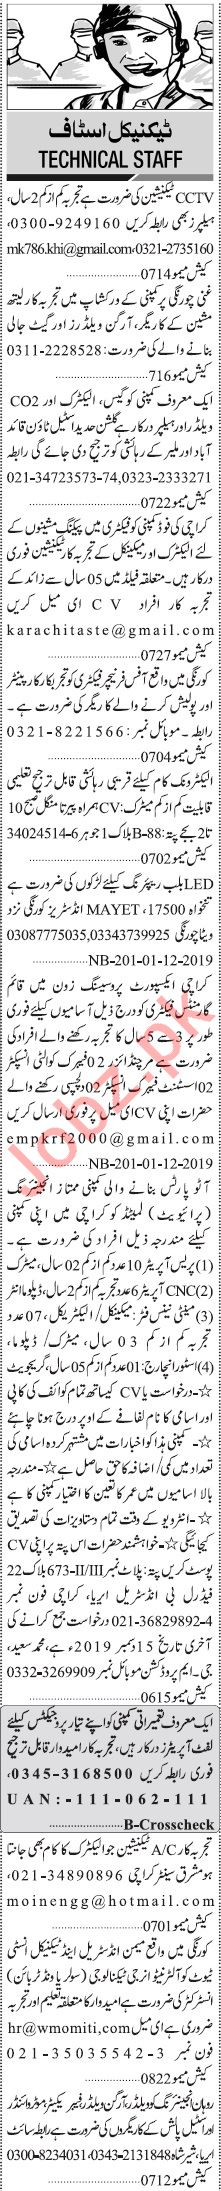 Jang Sunday Classified Ads 1st Dec 2019 for Technical Staff